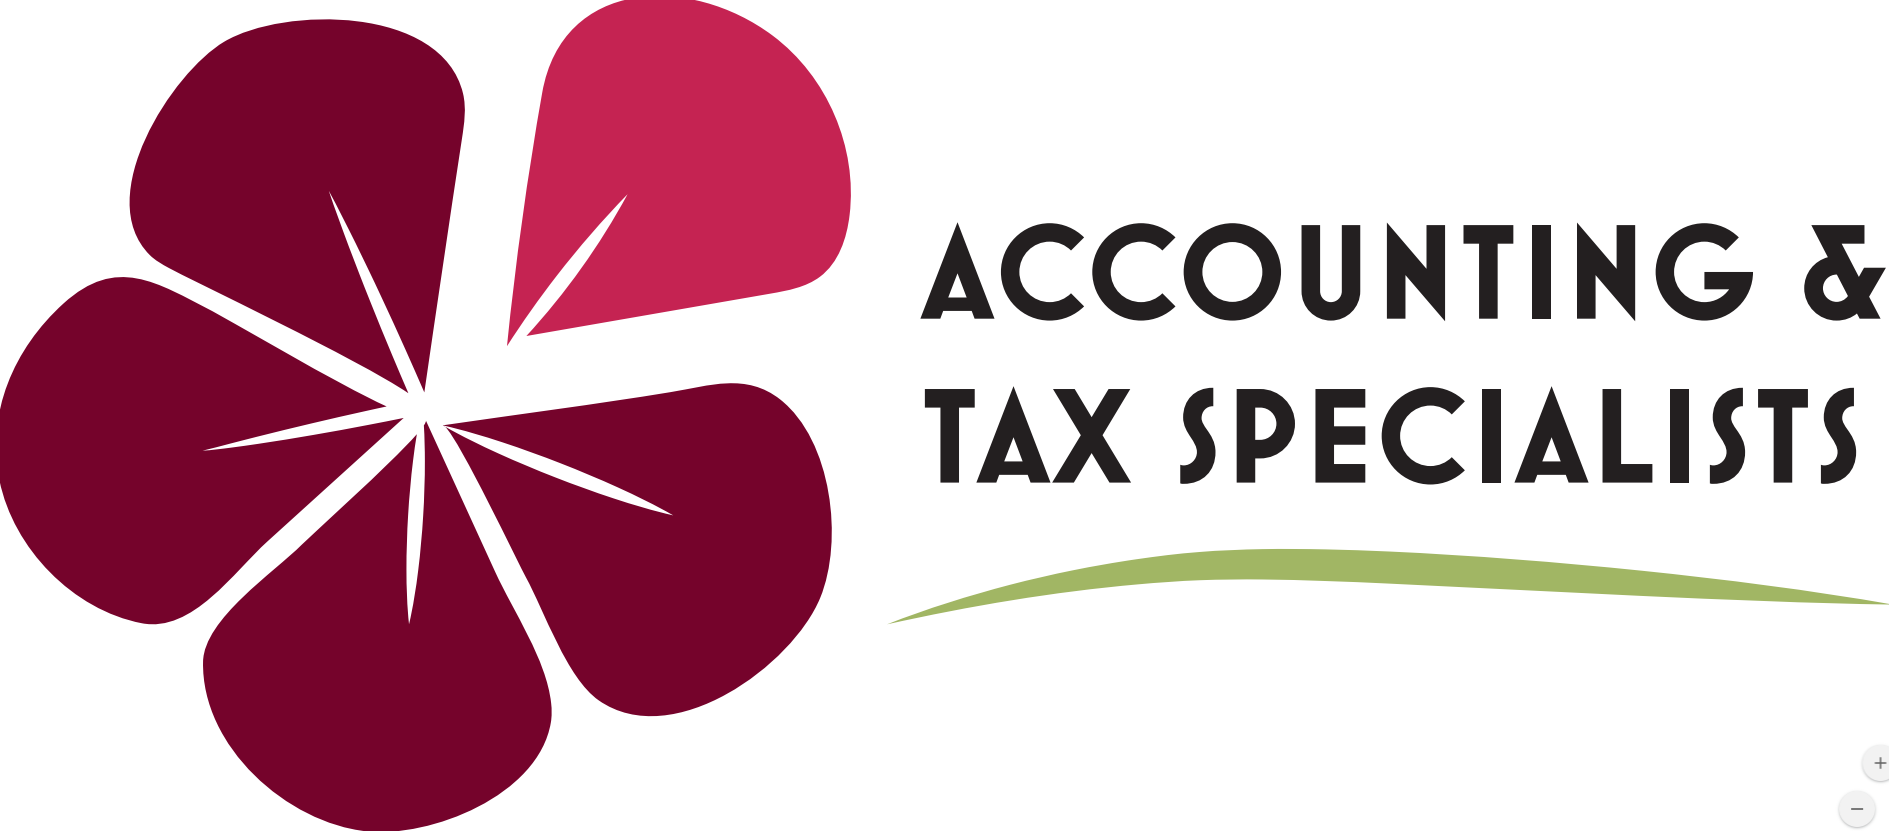 Accounting & Tax Specialists